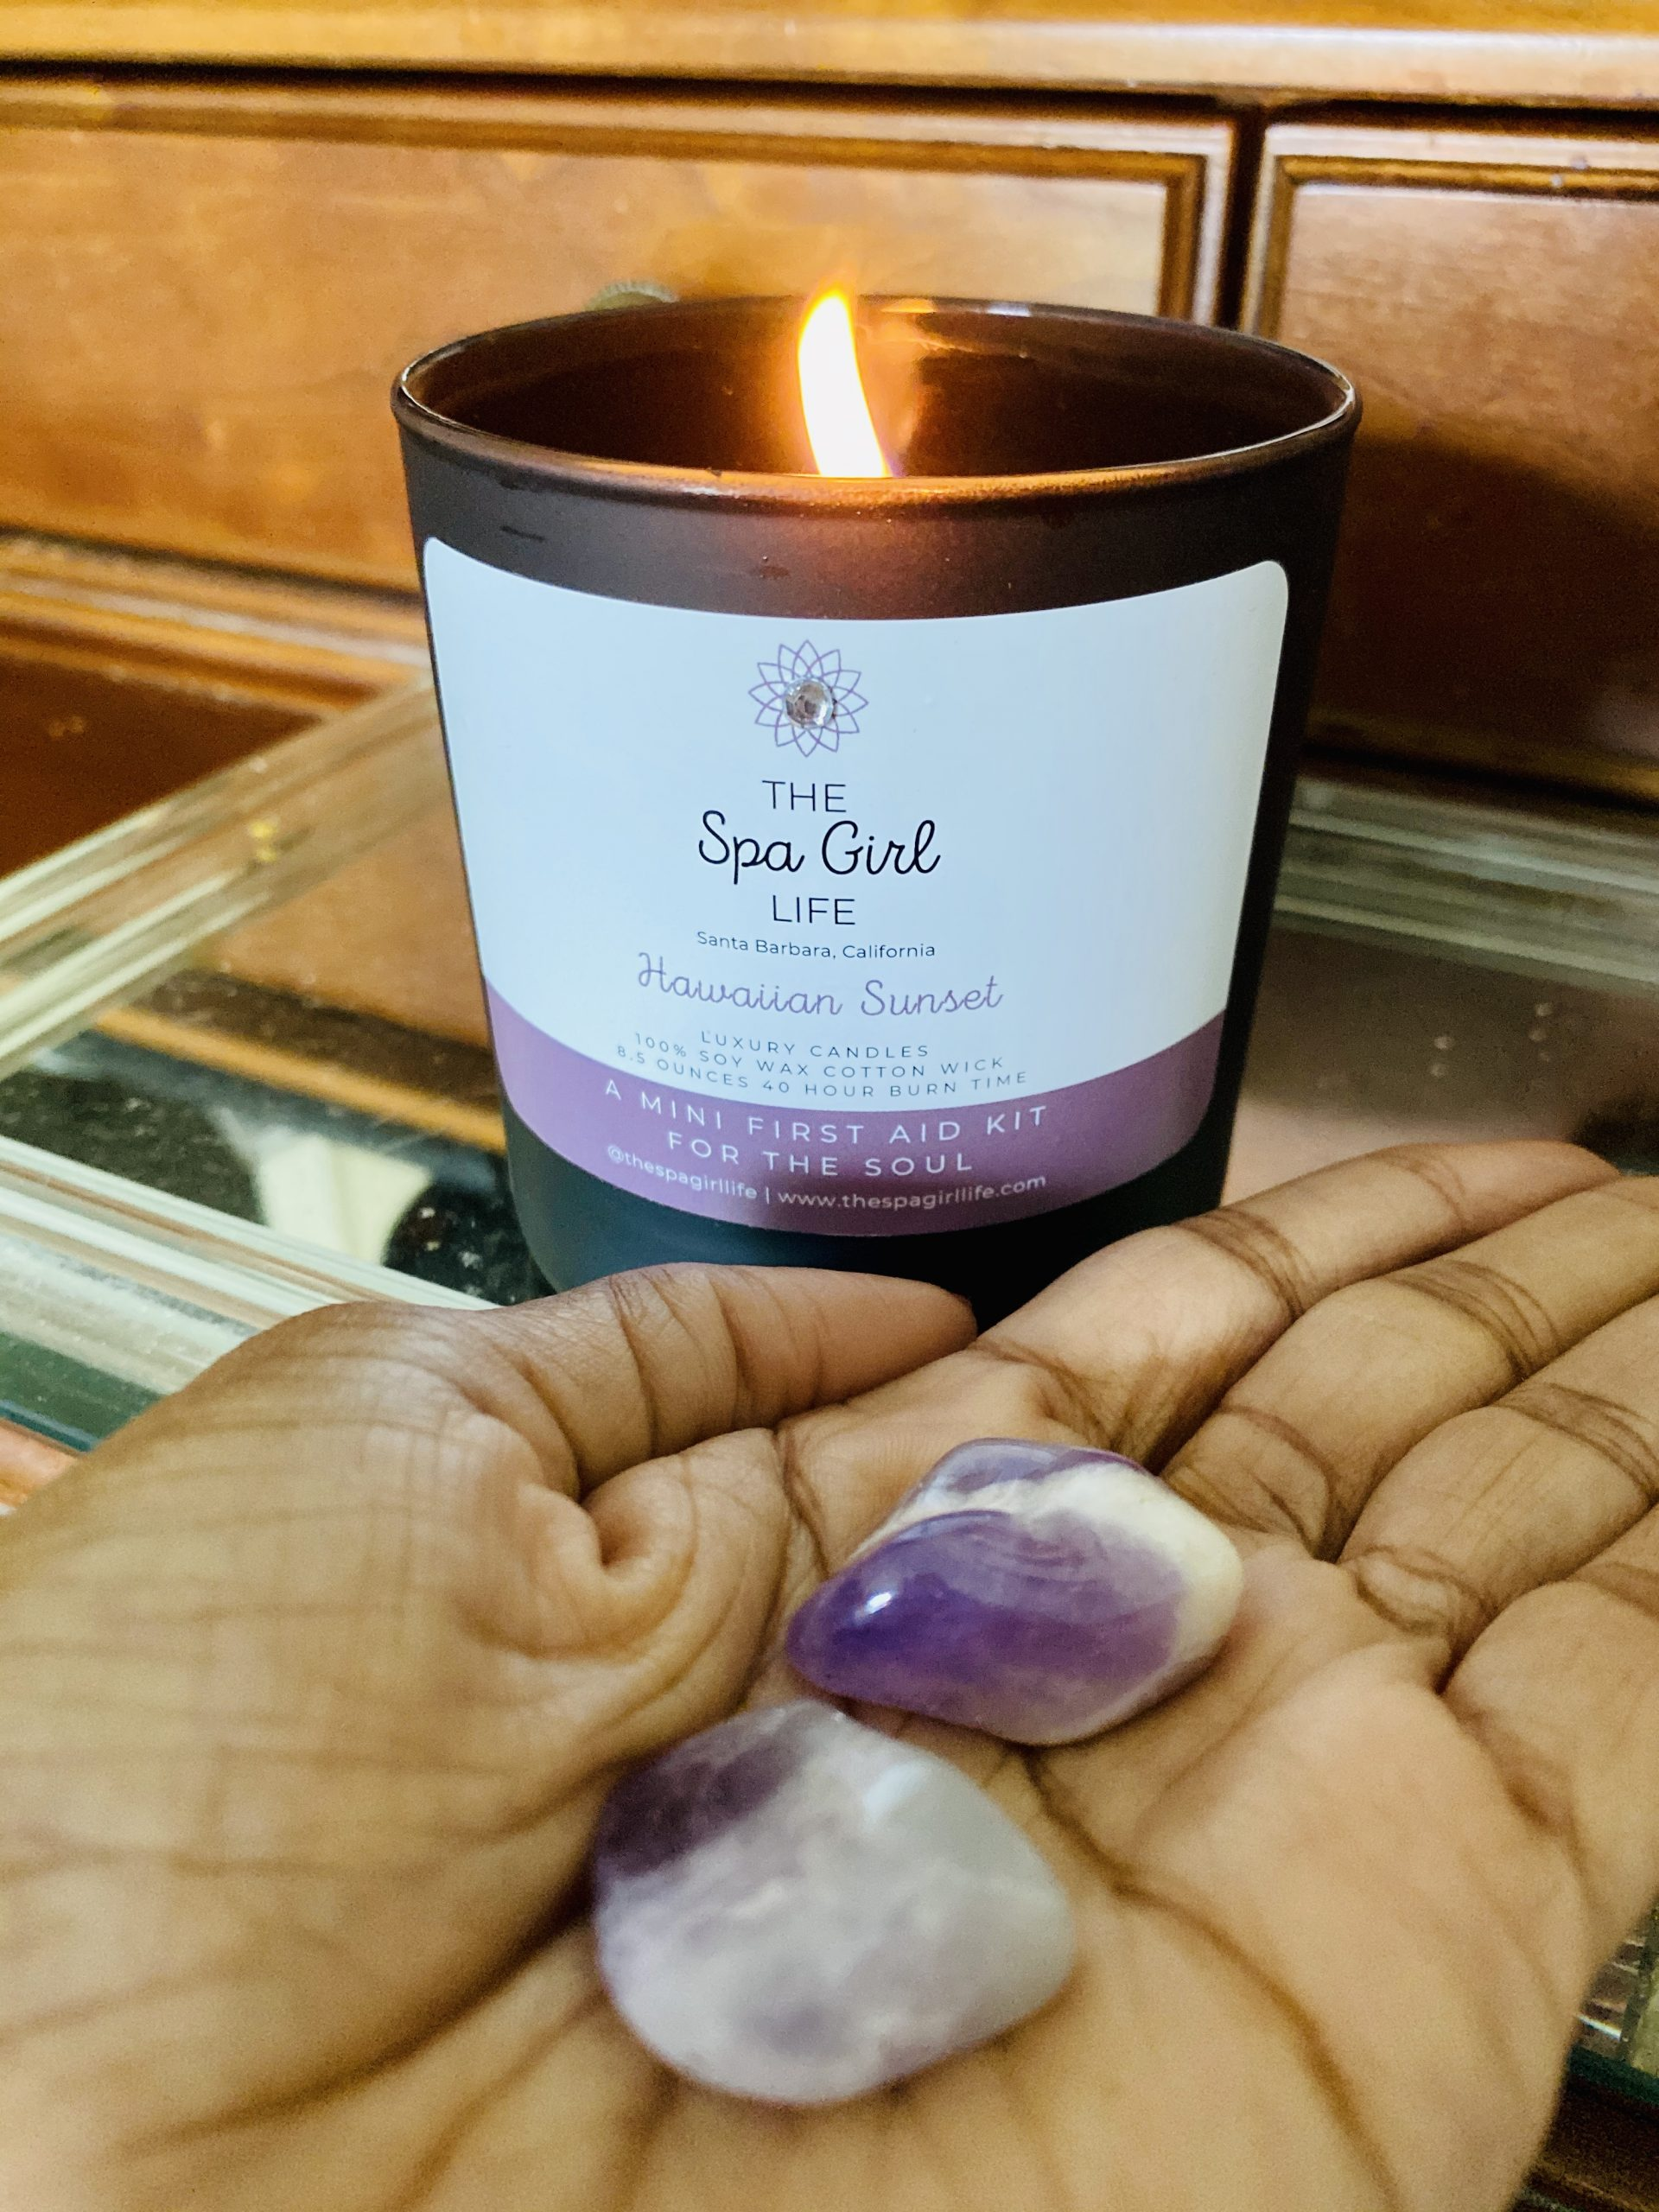 The Spa Girl Life Luxury Candles